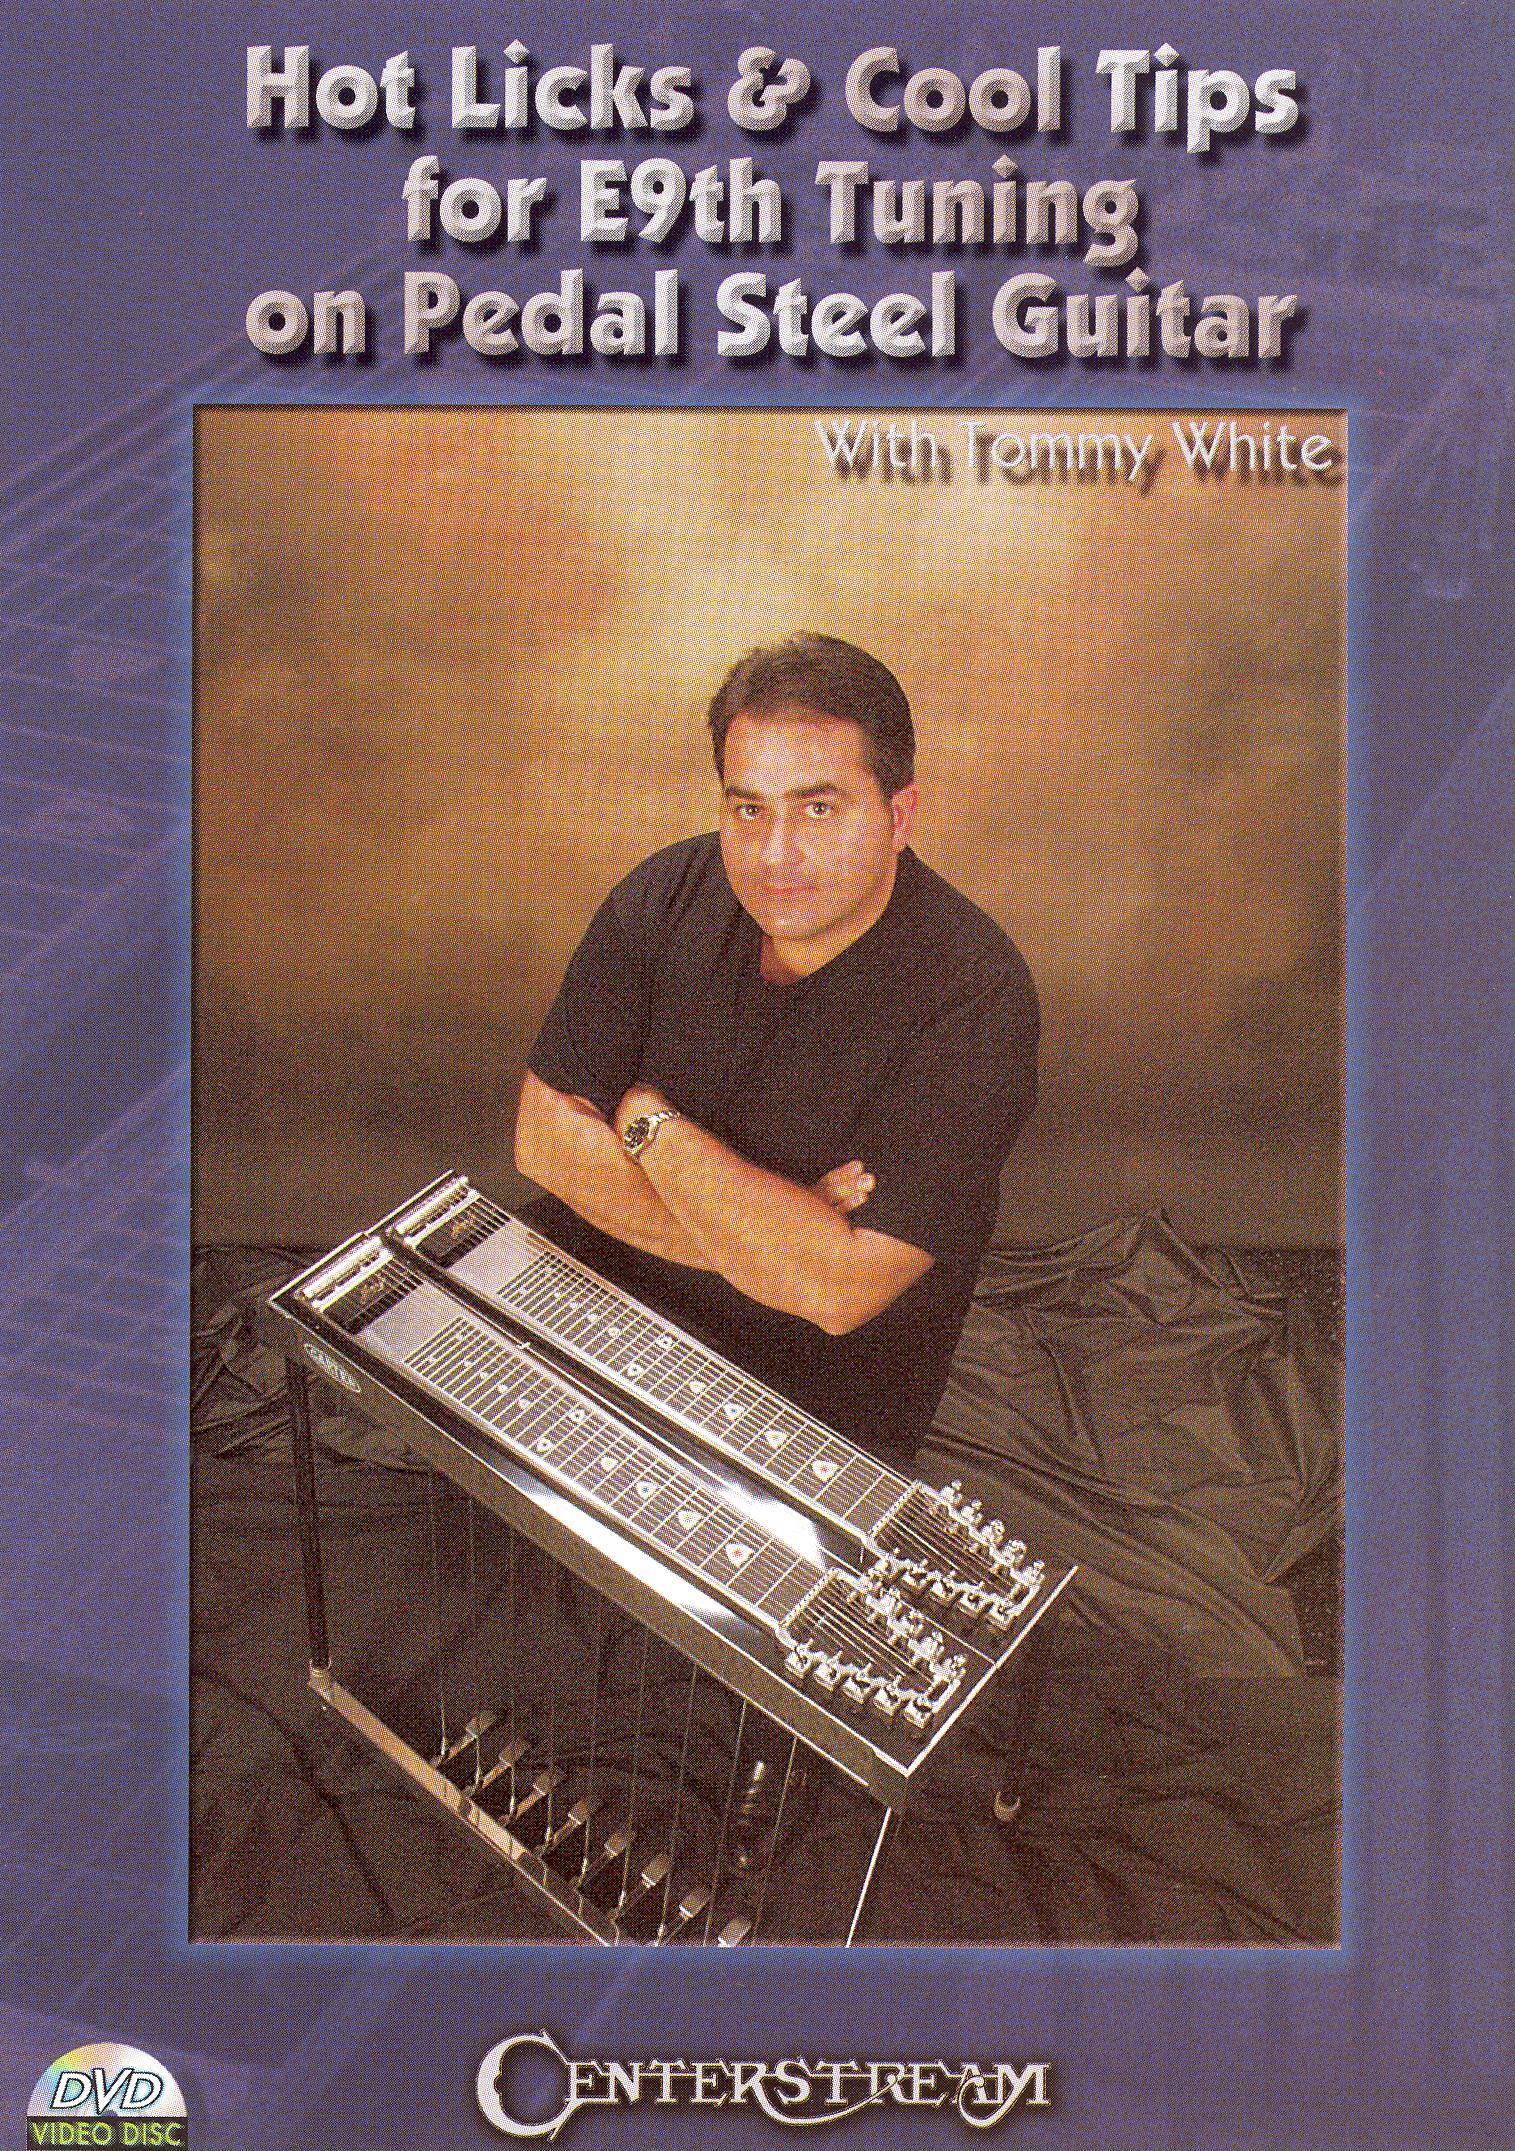 Tommy White: Hot Licks and Cool Tips for E9th Tuning on Pedal Steel Guitar